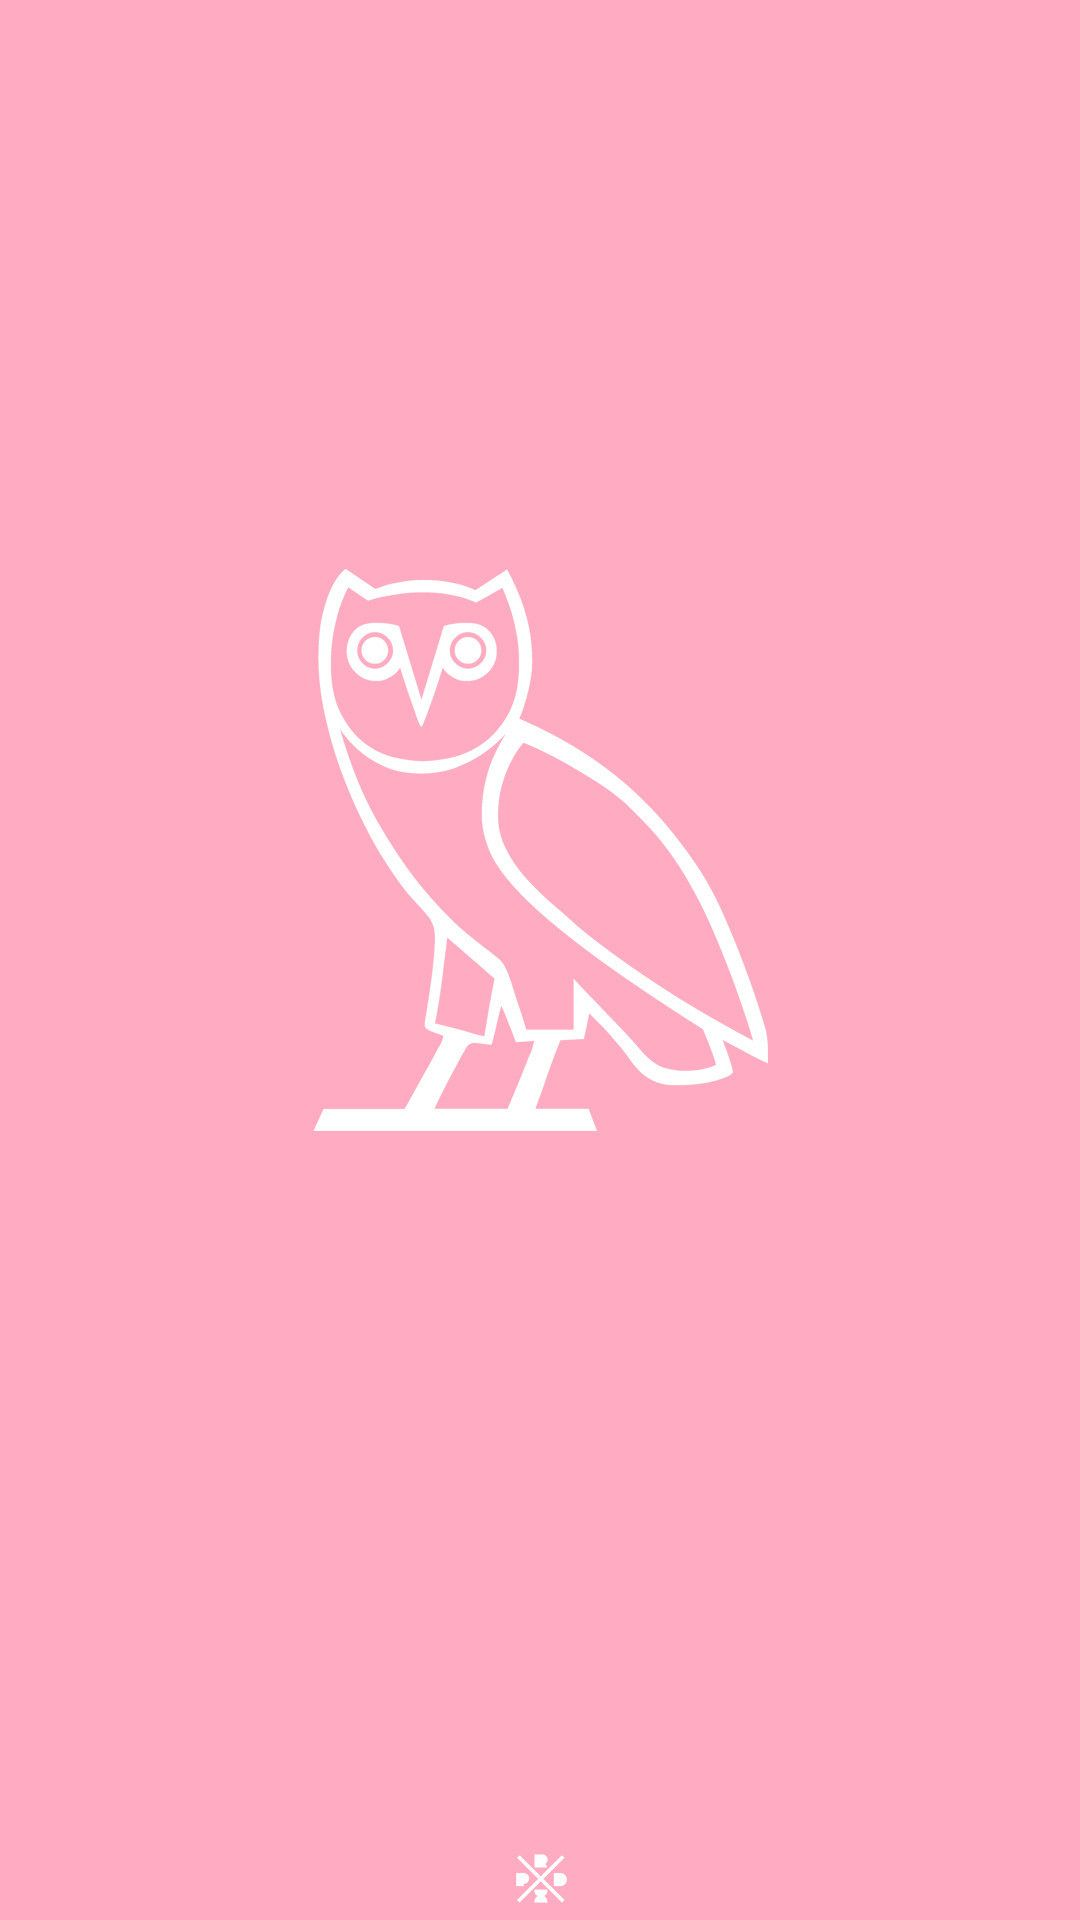 3840x2160 Ovoxo Wallpapers 1